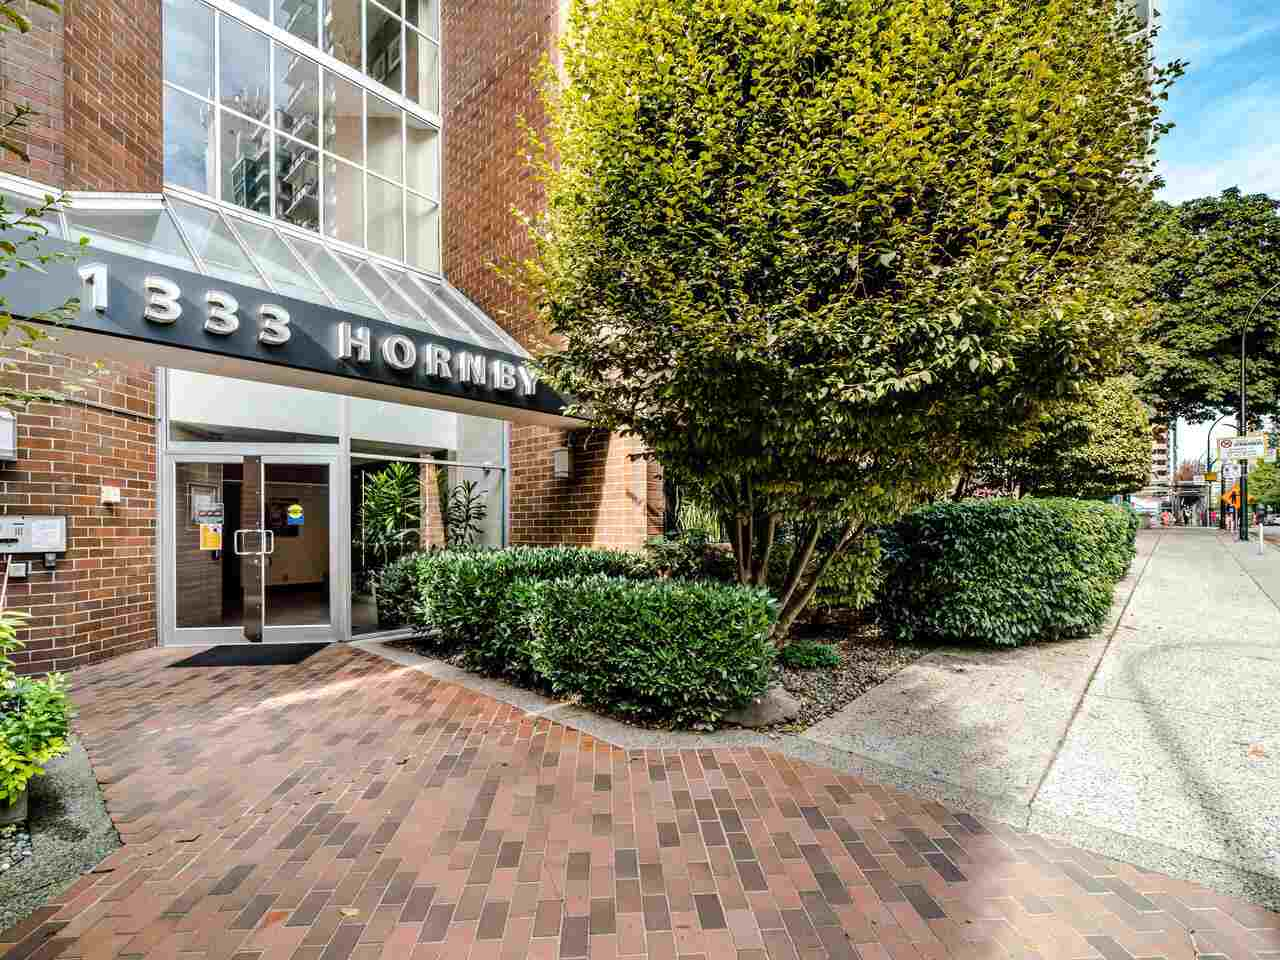 901 1333 HORNBY STREET - Downtown VW Apartment/Condo for sale, 1 Bedroom (R2517264) - #1